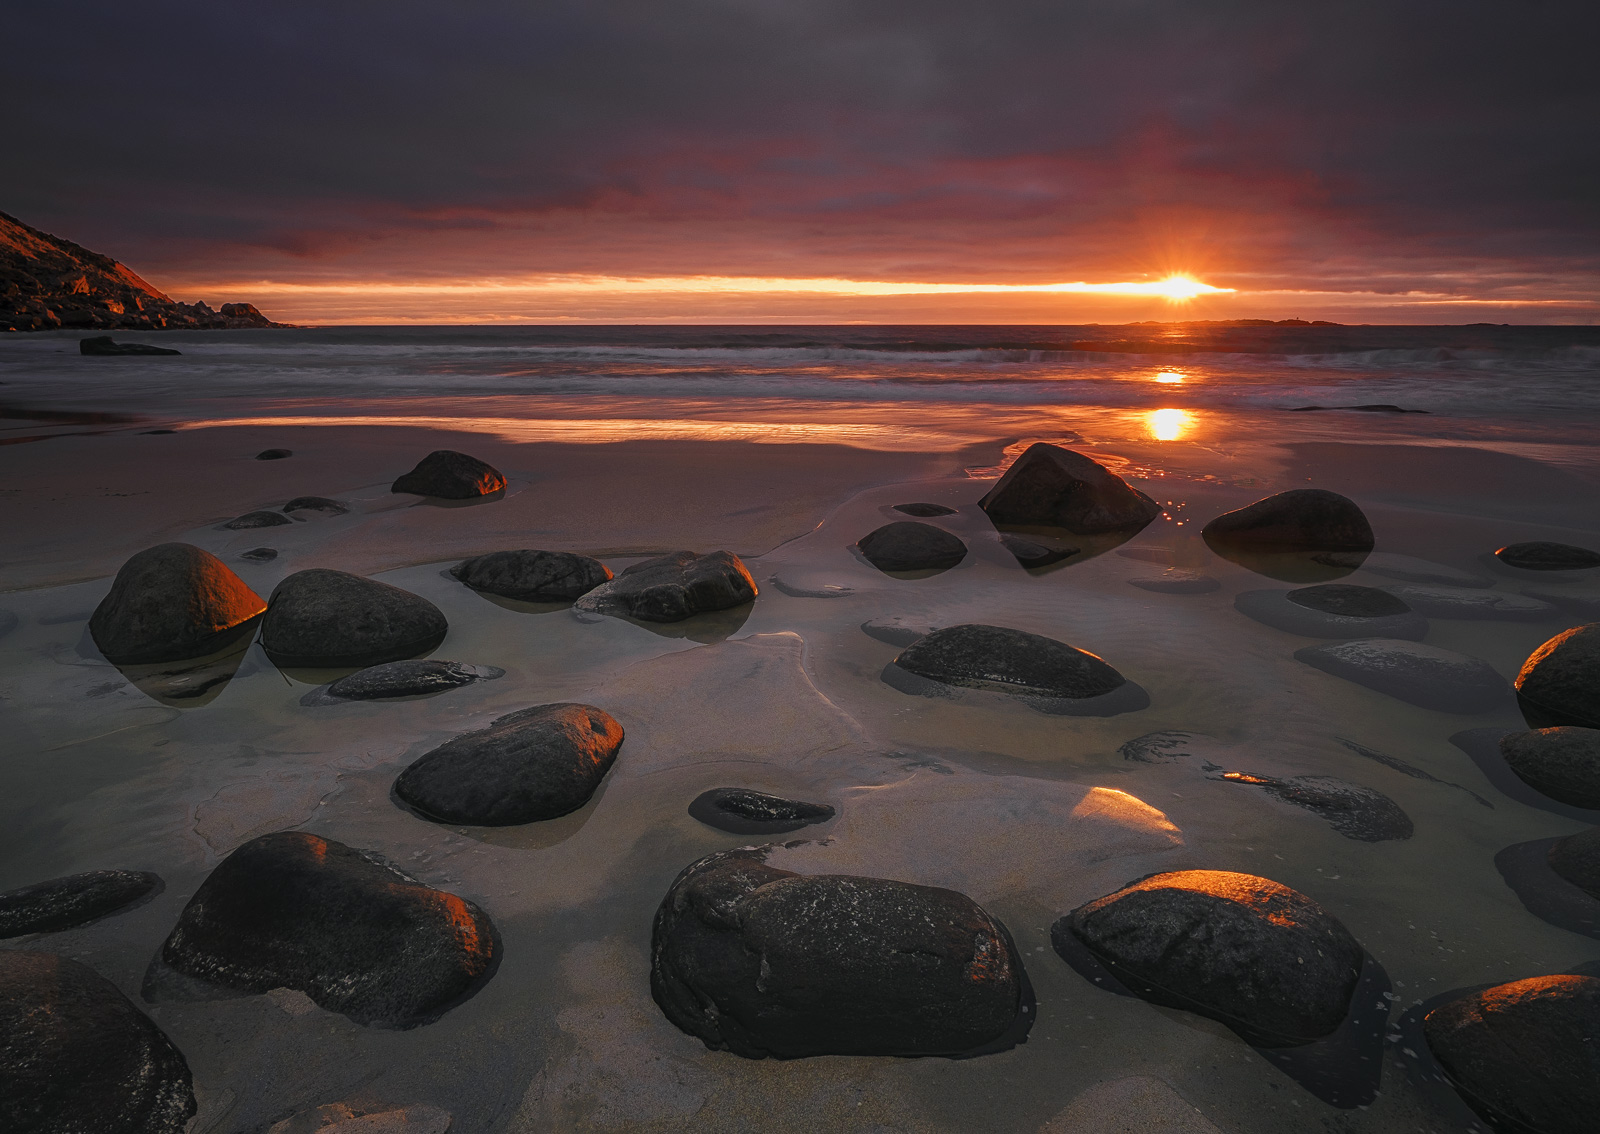 For a very short while as the setting sun passed through a ribbon of clearer sky the sun set scarlet across the black boulders...